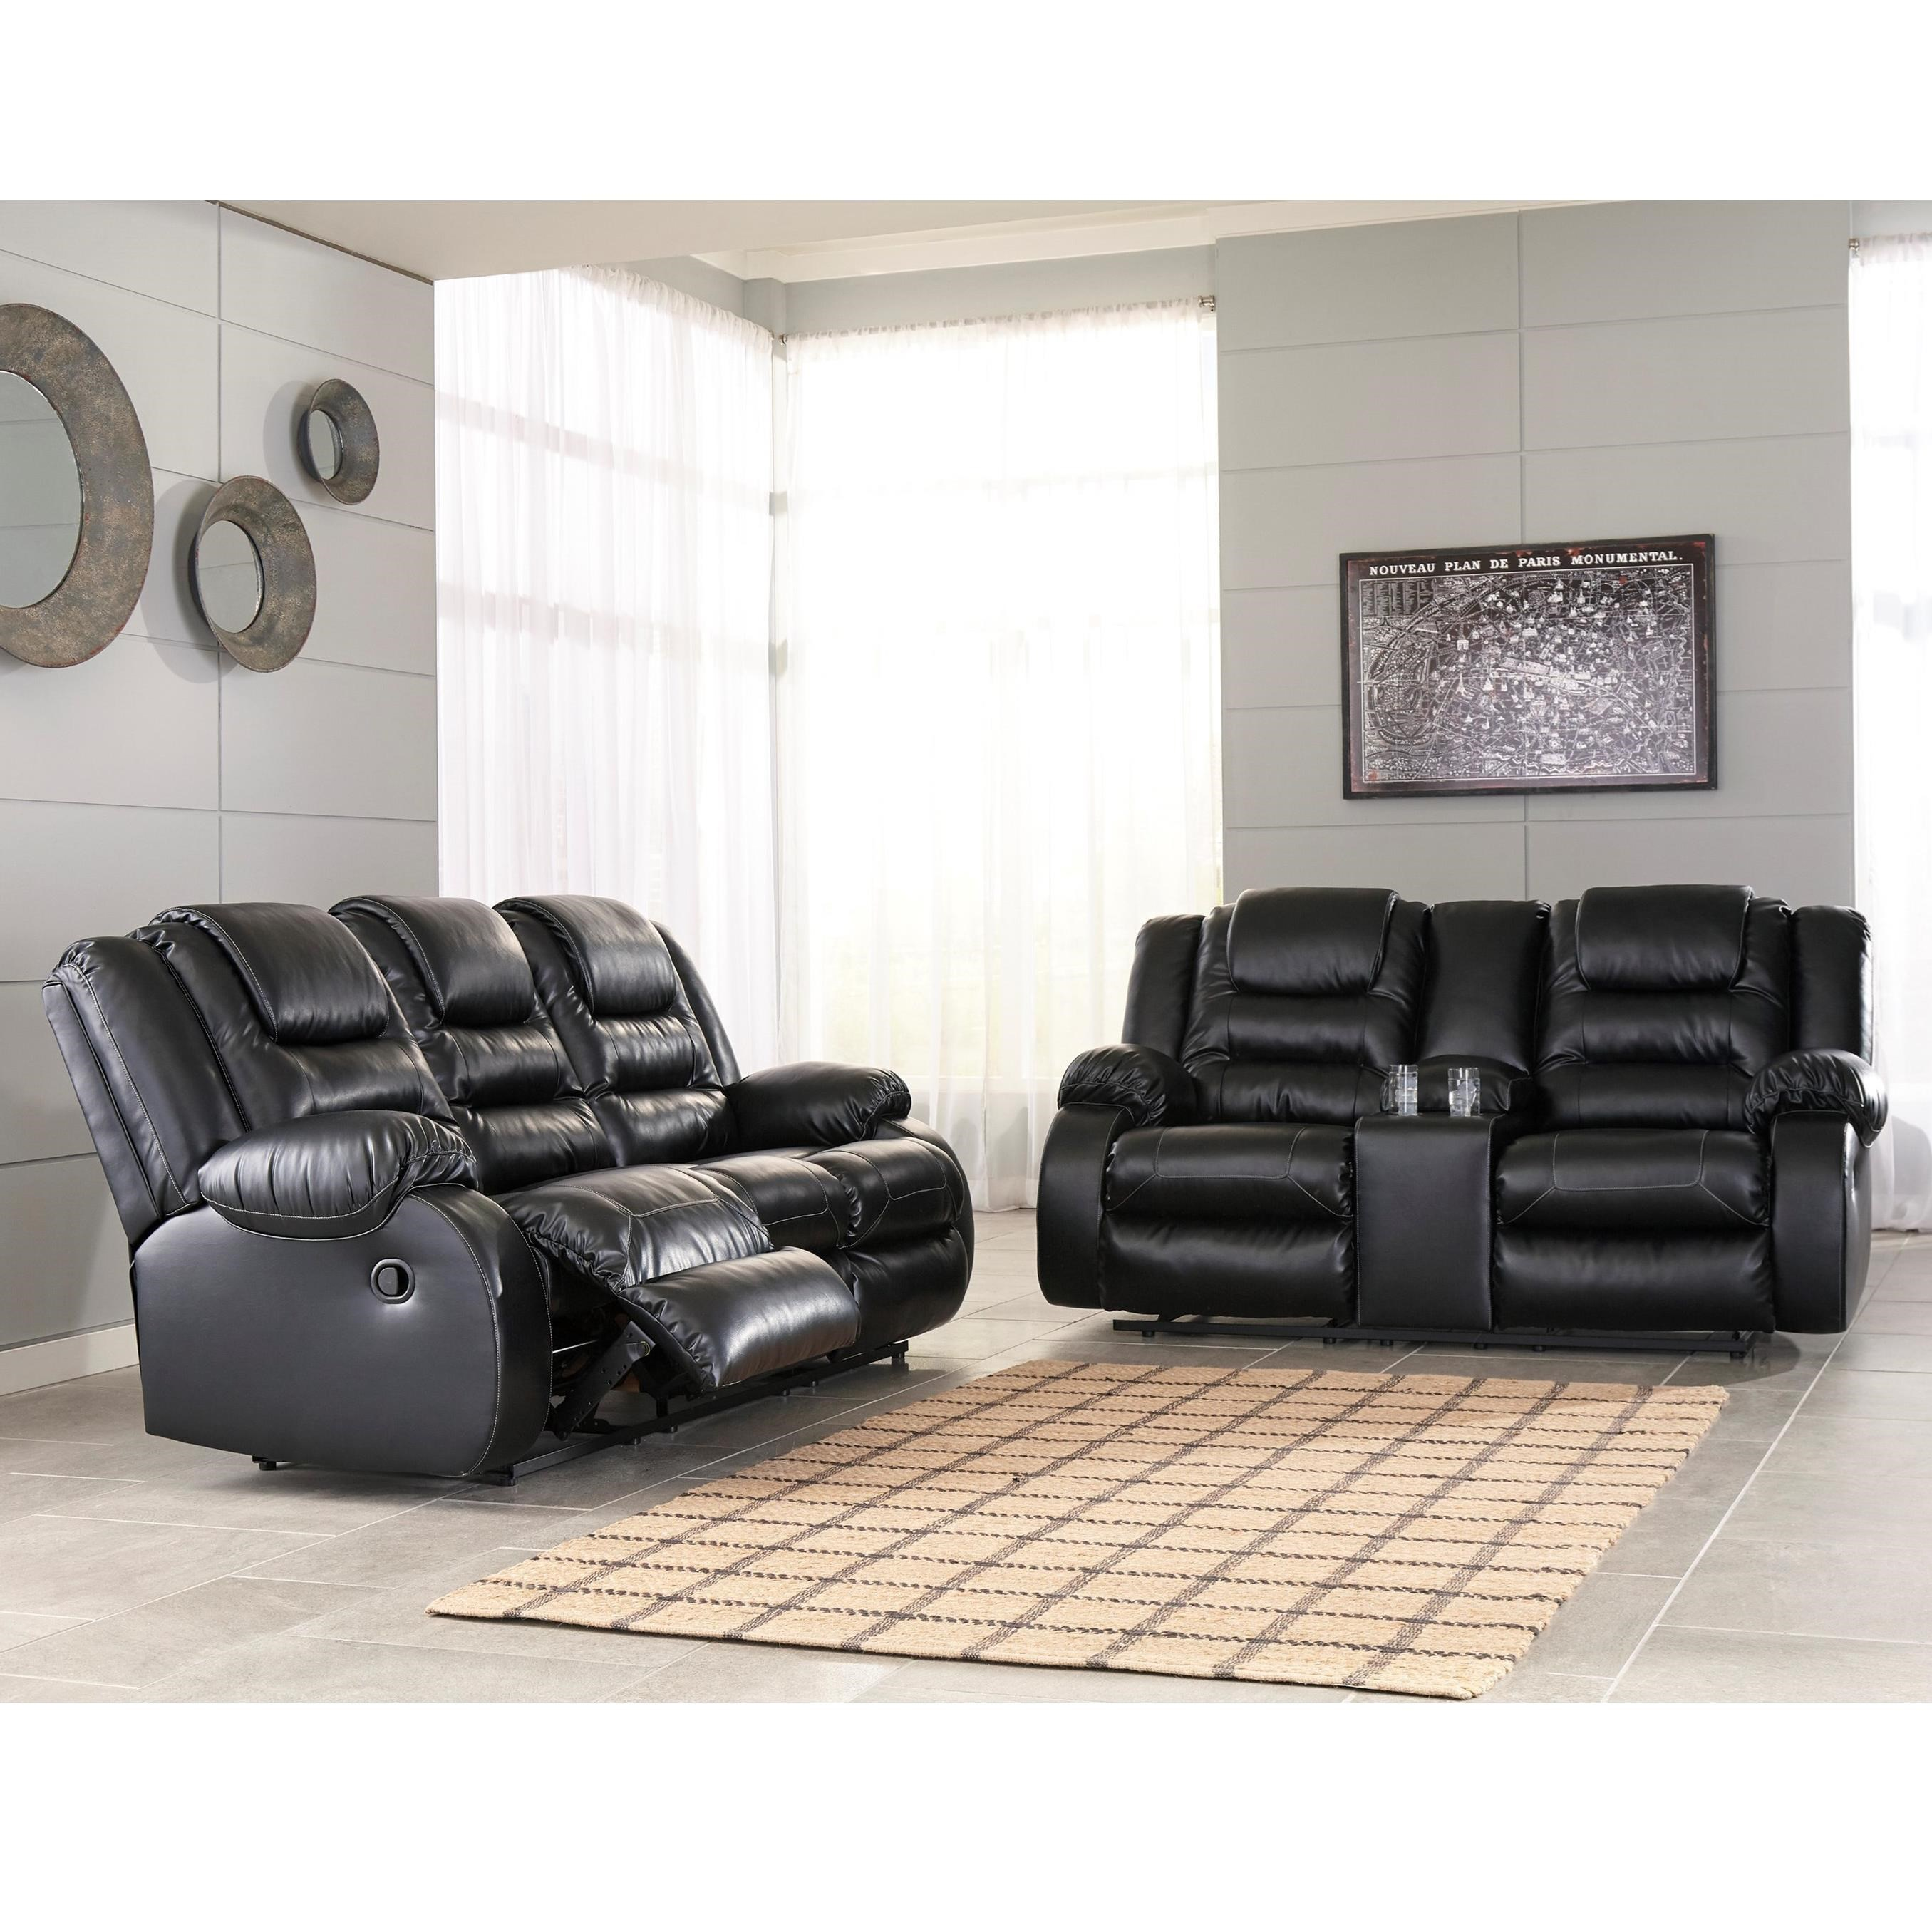 Ashley Furniture Superstore: Signature Design By Ashley Vacherie Reclining Living Room